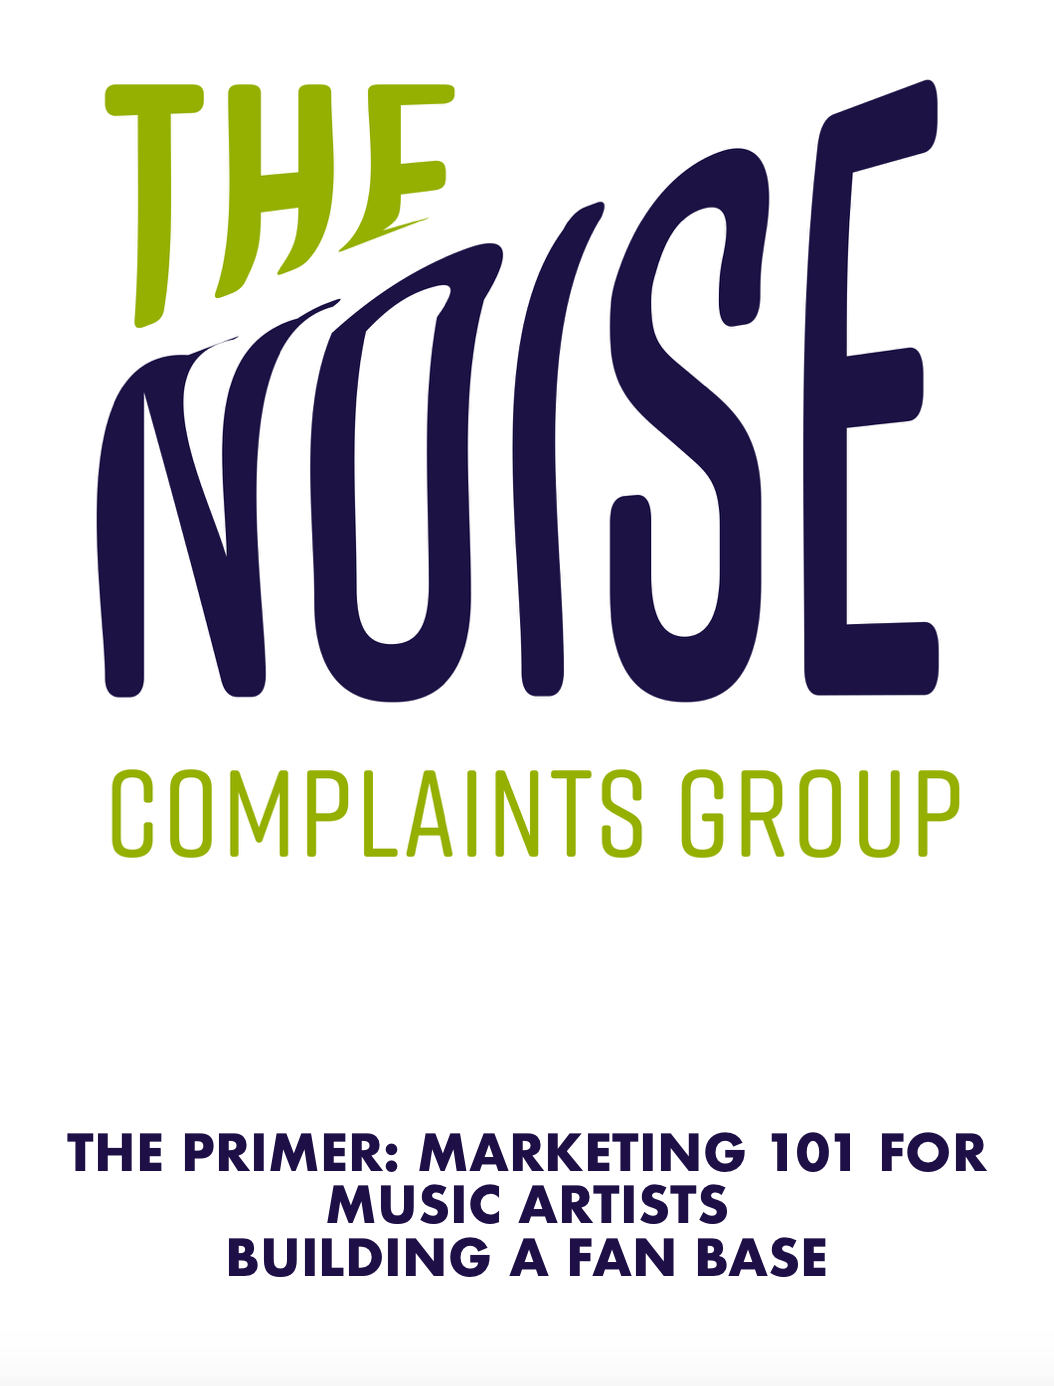 the primer music marketing 101 building a fan base